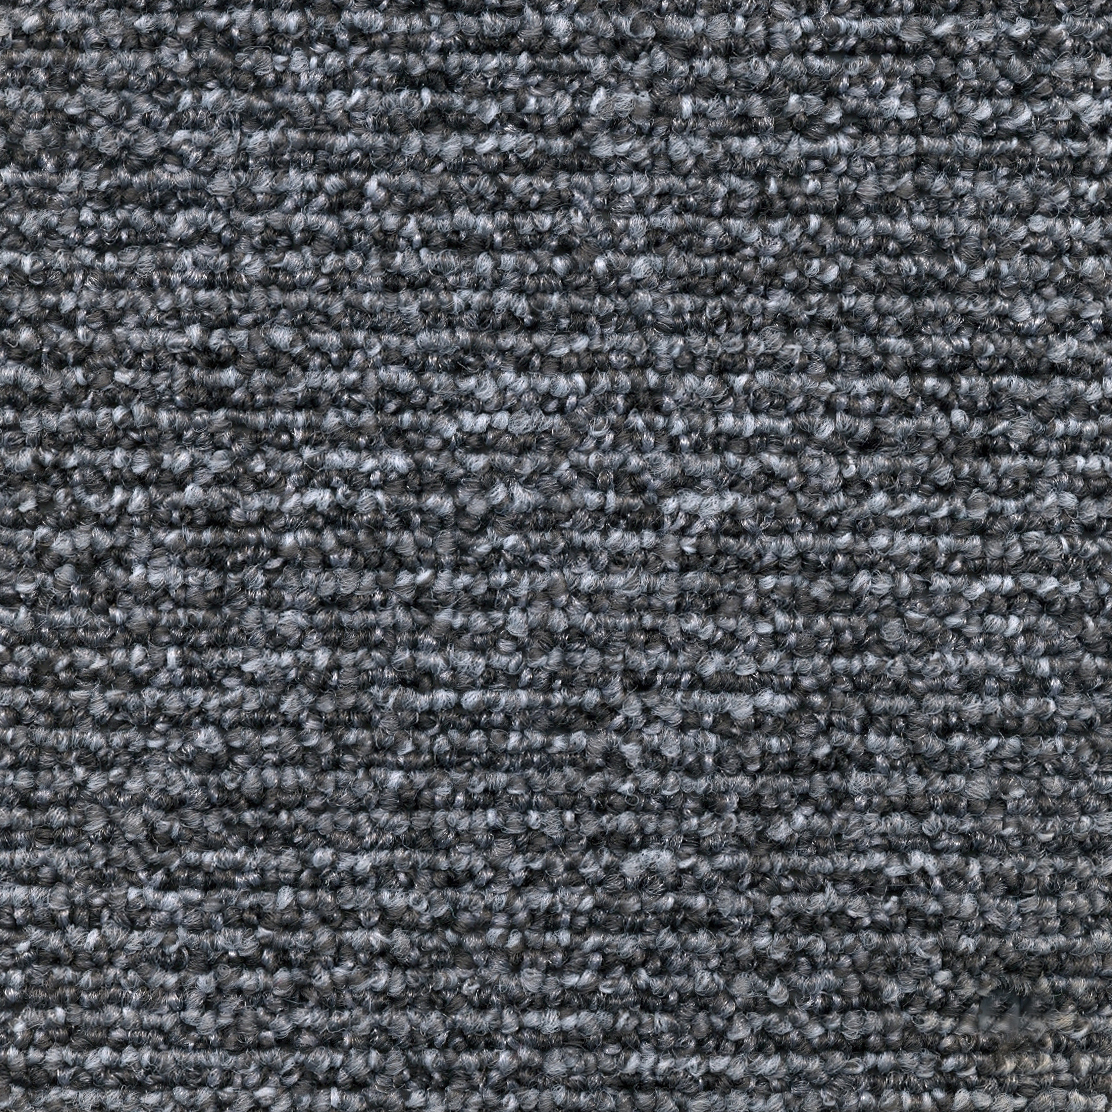 Titan Charcoal Slate | Loop Pile Polypropylene Carpet Tile